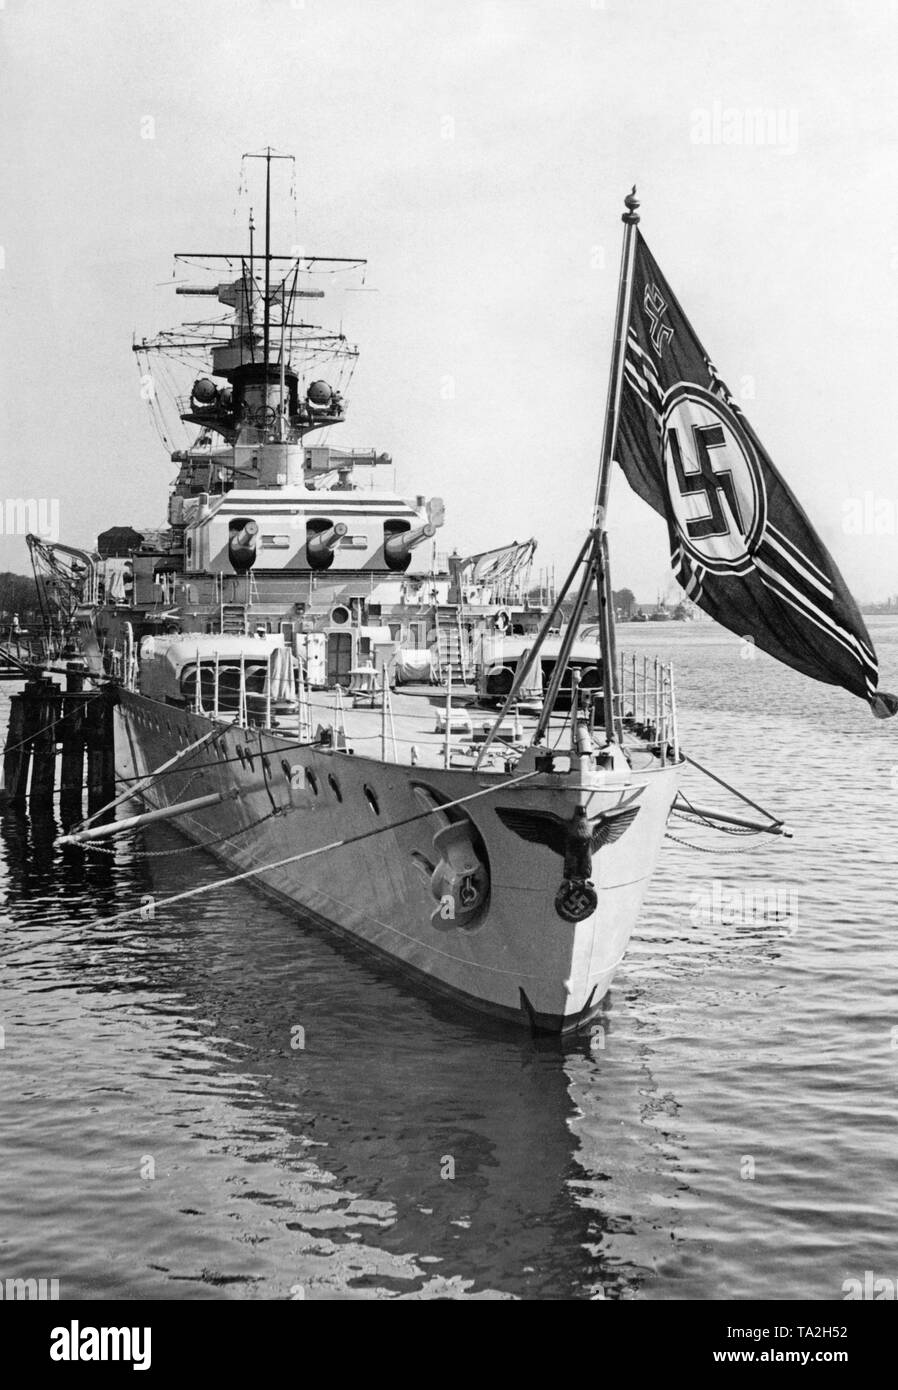 Photo of the rear of theheavy cruiser'Deutschland' at the great naval review in Swinoujscie (Poland) at the Szczecin Lagoon in the Baltic Sea. The warship is anchored in the harbor.  Here, the imperial eagle with a swastika, as well as the naval ensign of the German Reich at the stern. Behind, the rear turret with three 28 cm quick-firing guns. - Stock Image